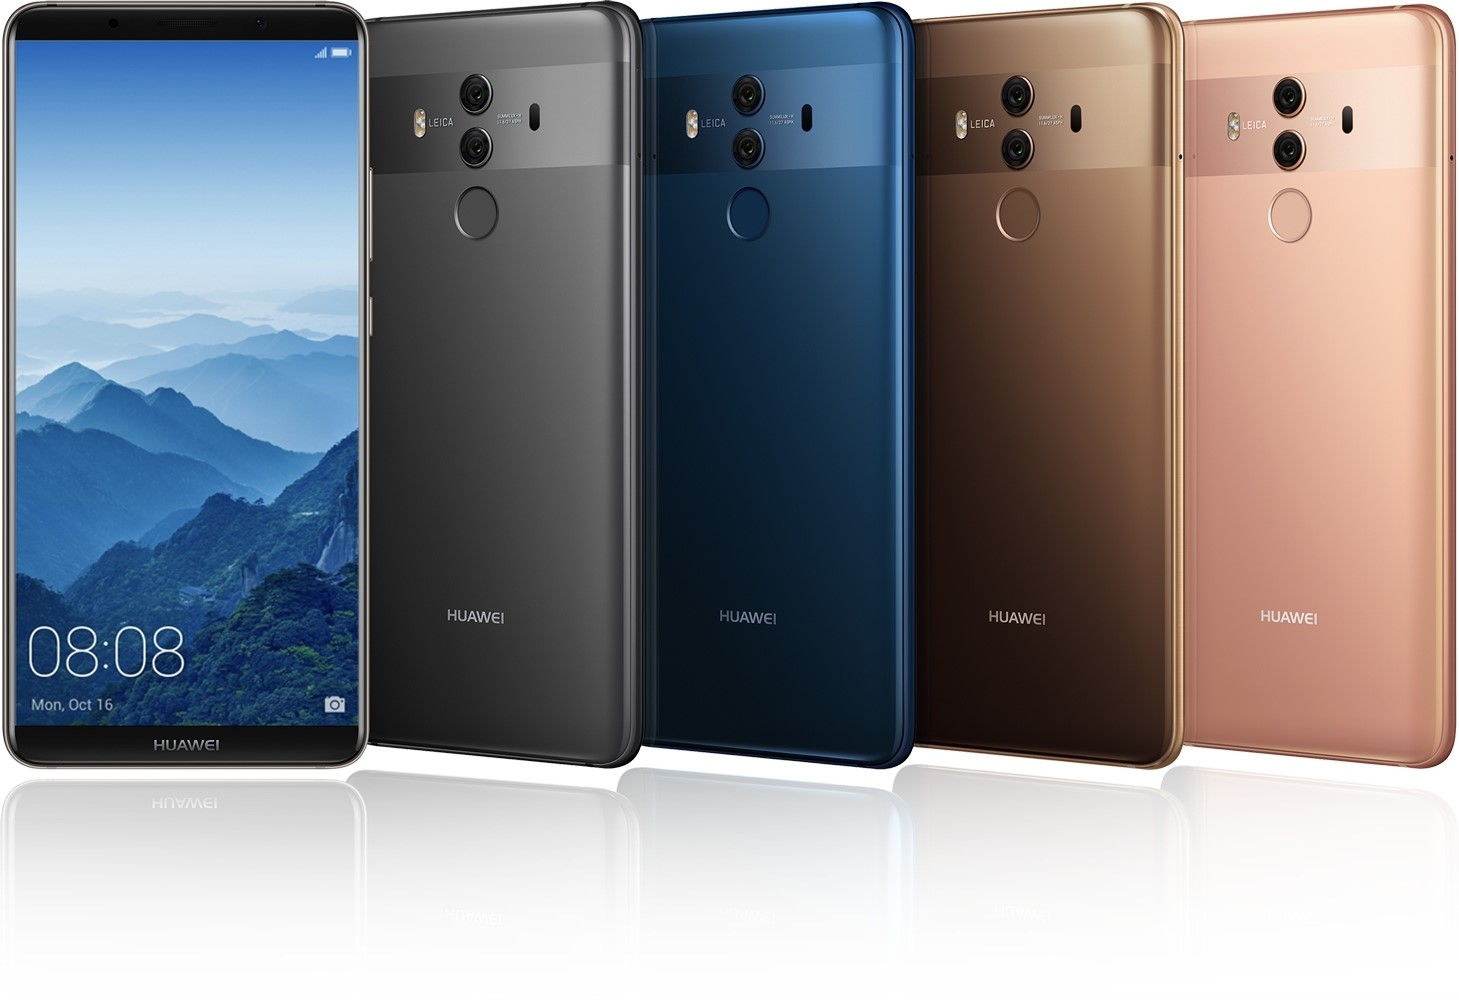 Huawei Mate 10 pro colourways